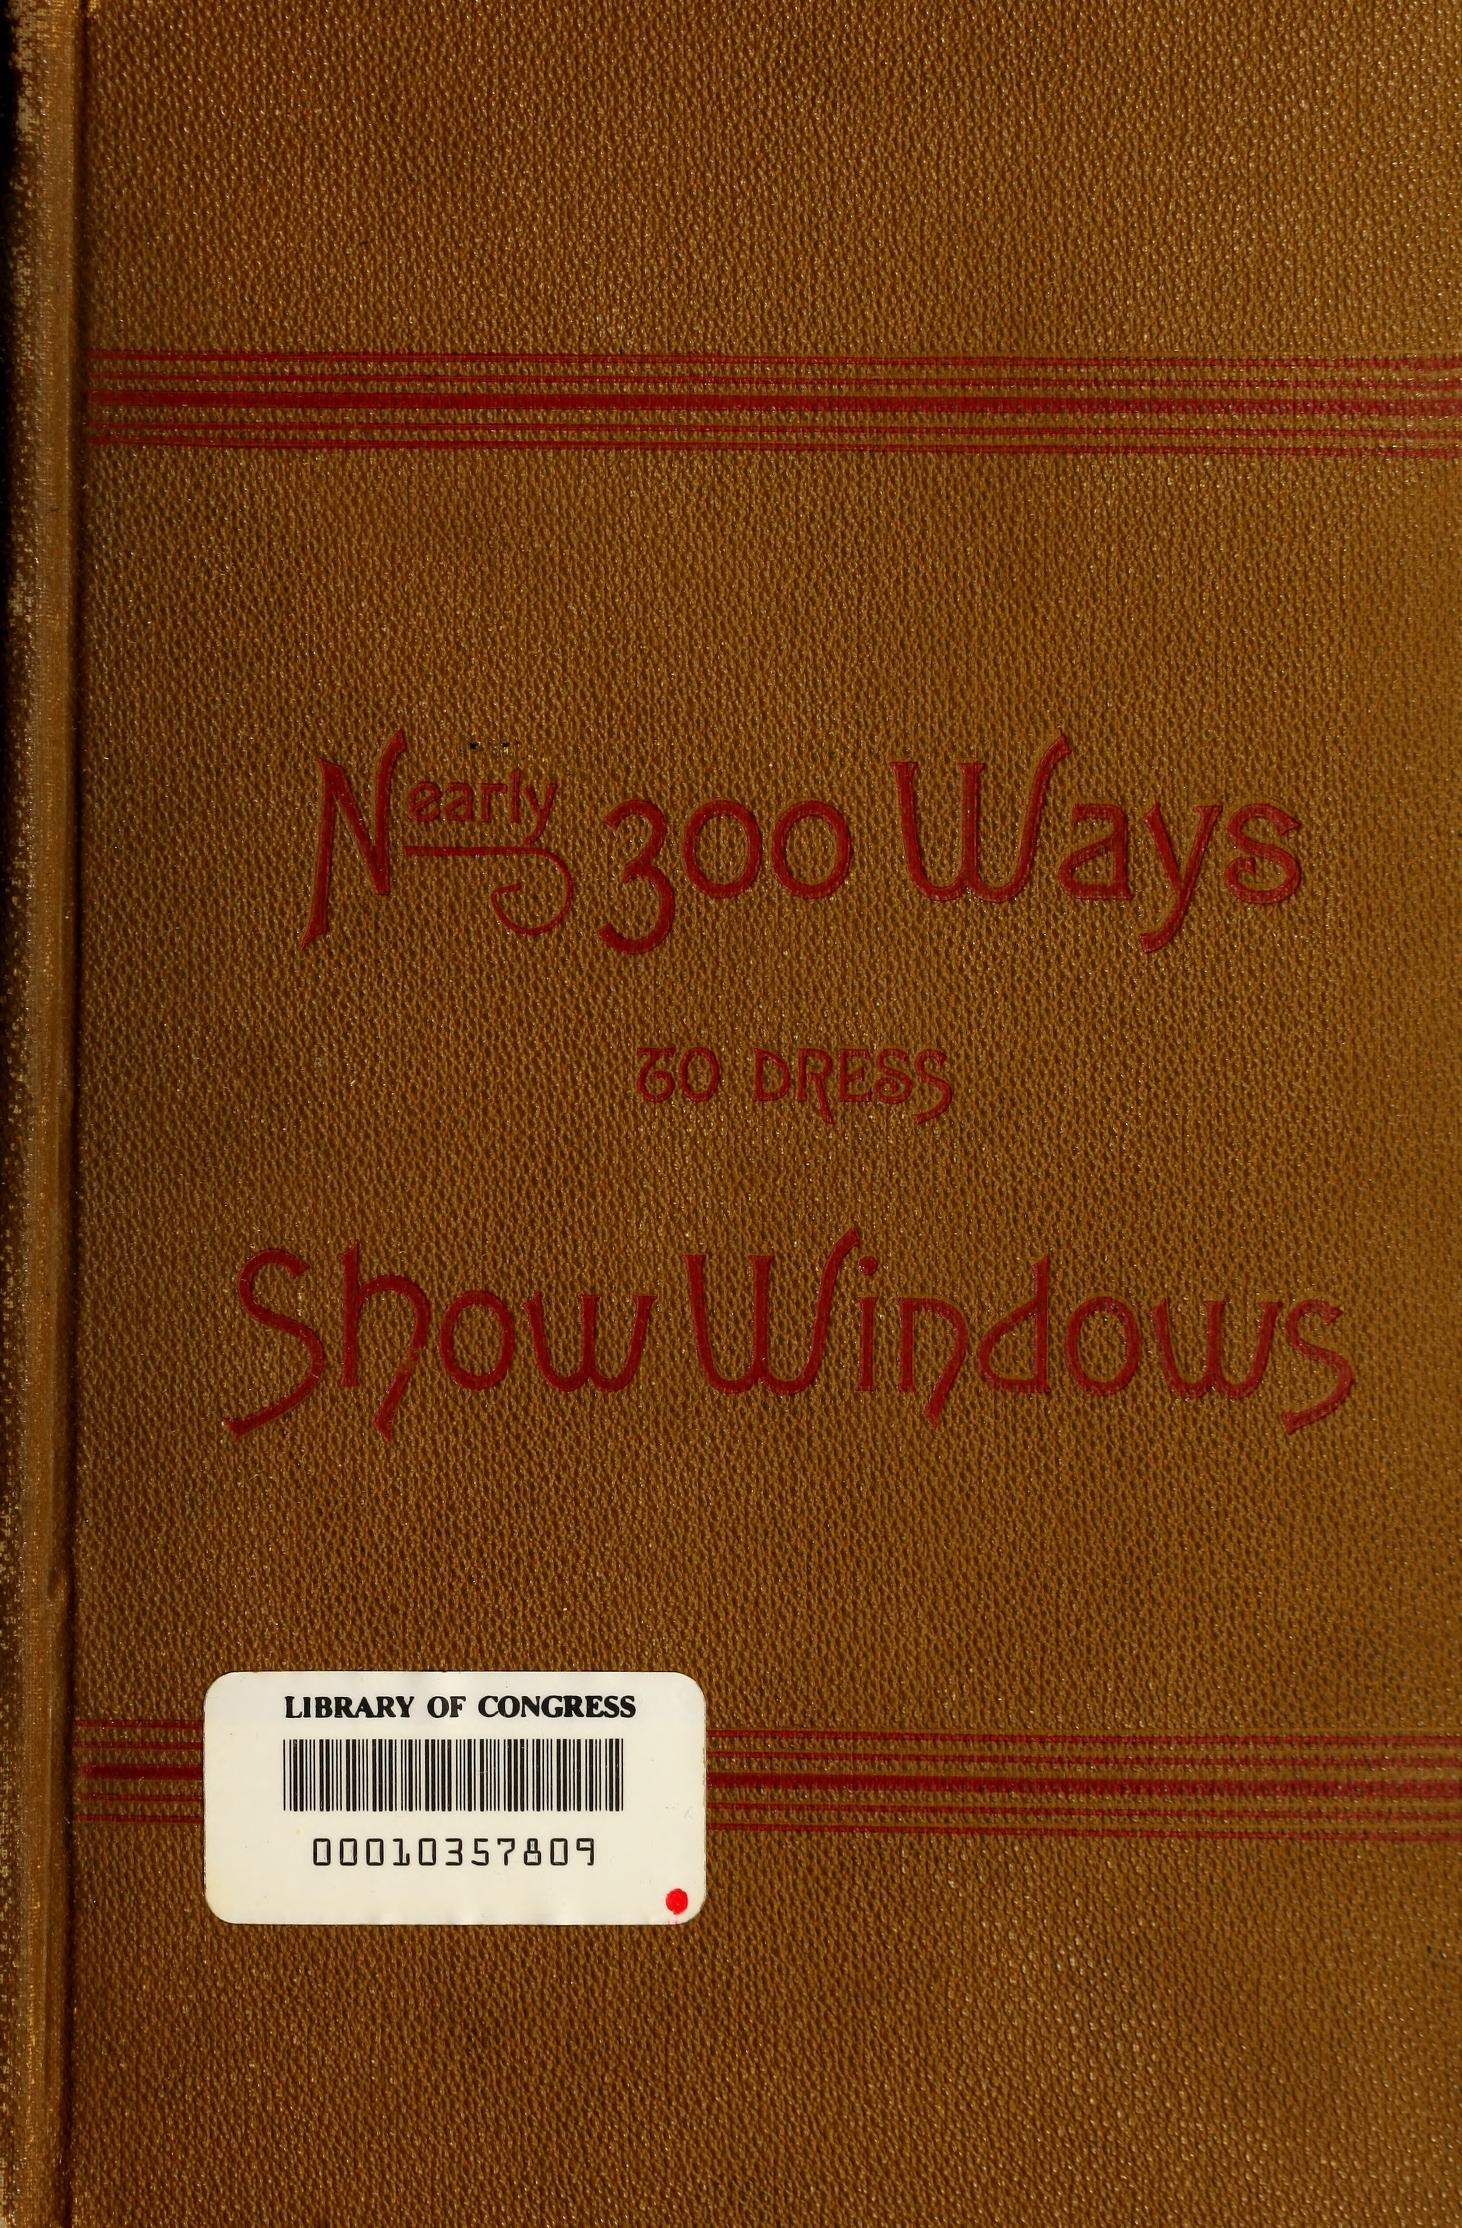 Nearly three hundred ways to dress shop windows